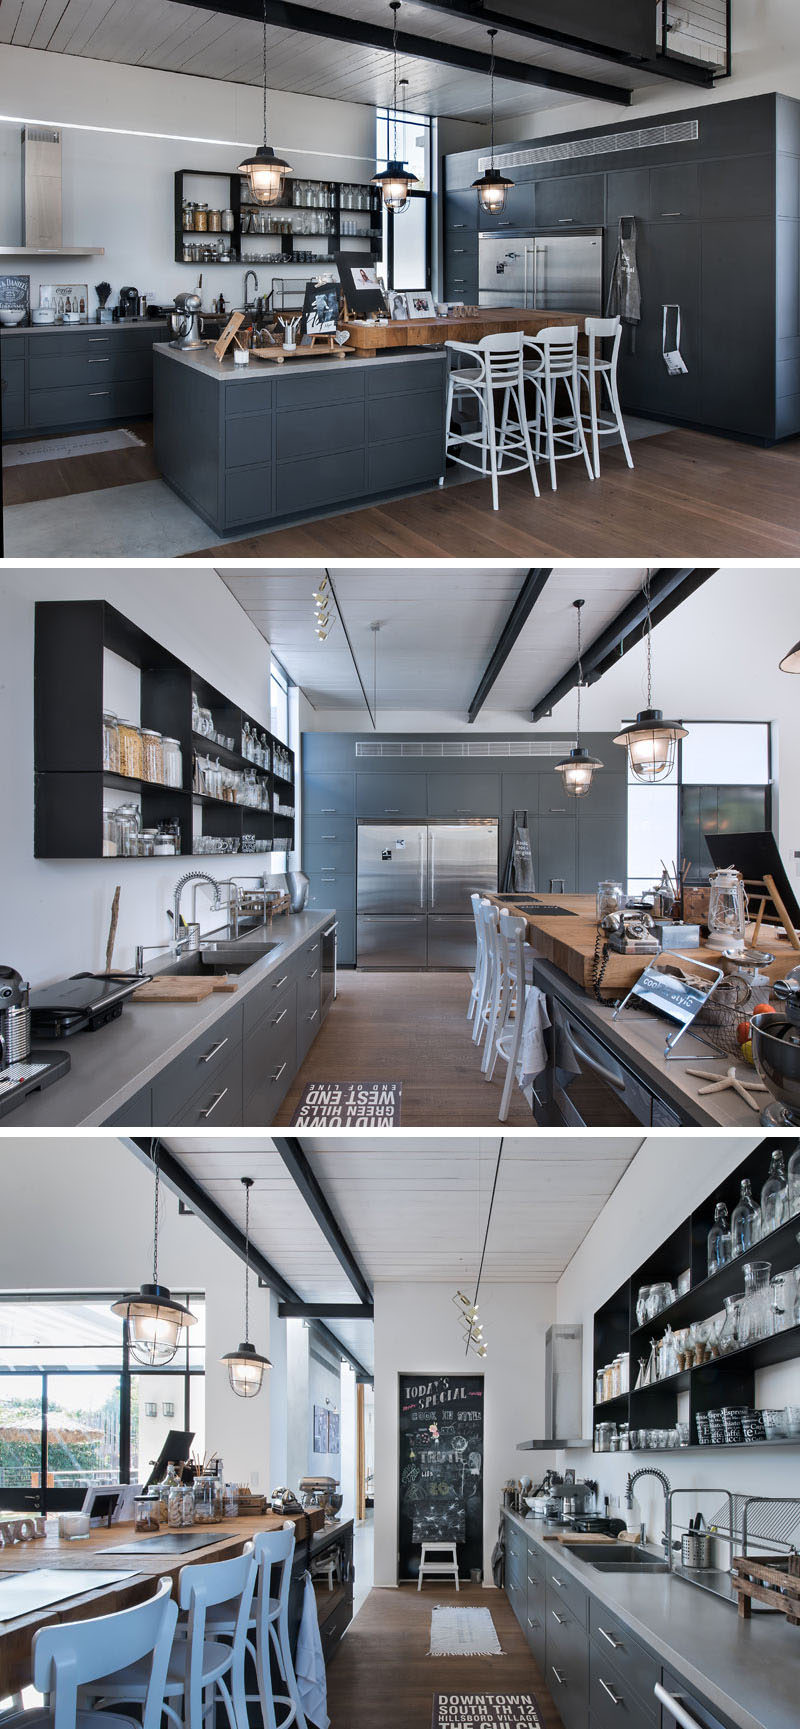 In this kitchen, the central island has a large wooden butcher block top, and white accents, like the chairs, pop against the dark gray cabinets.